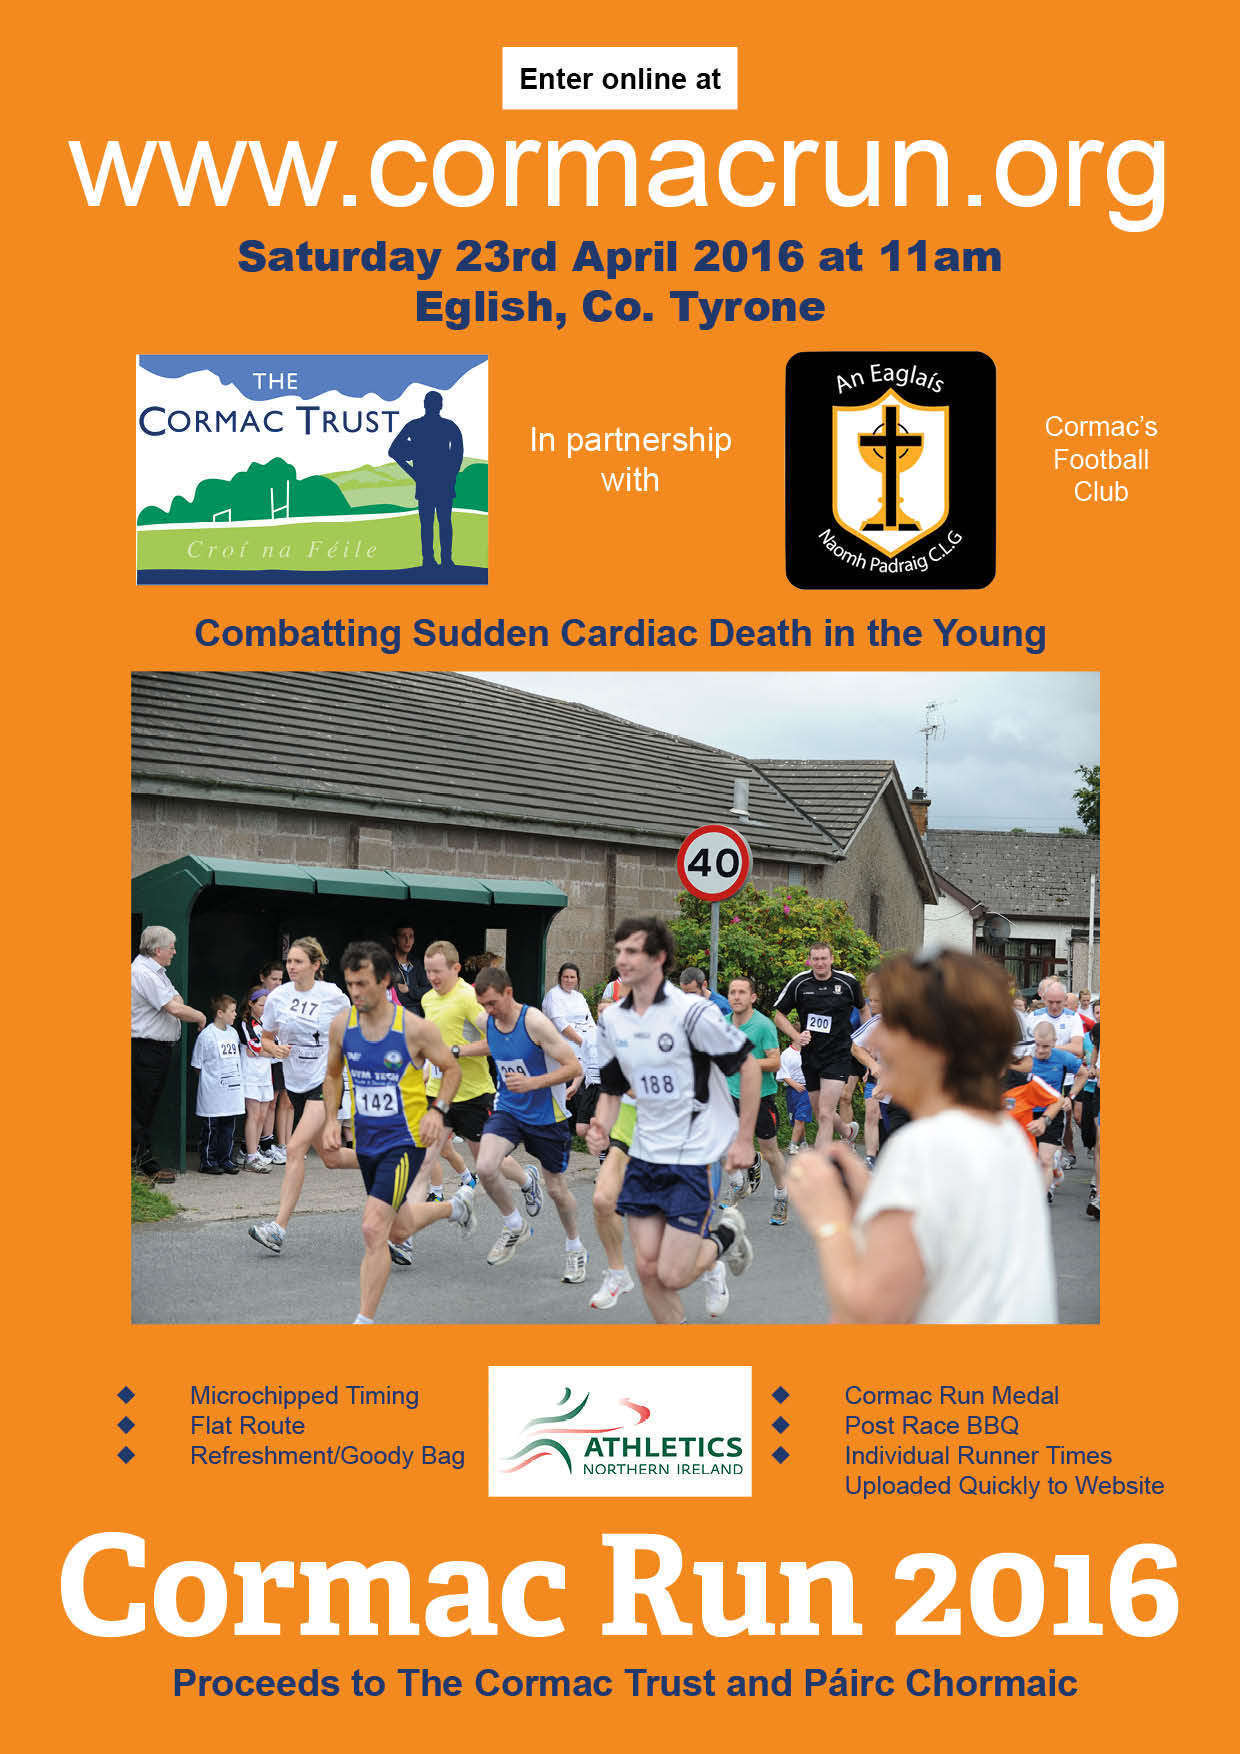 Cormac Run 2016